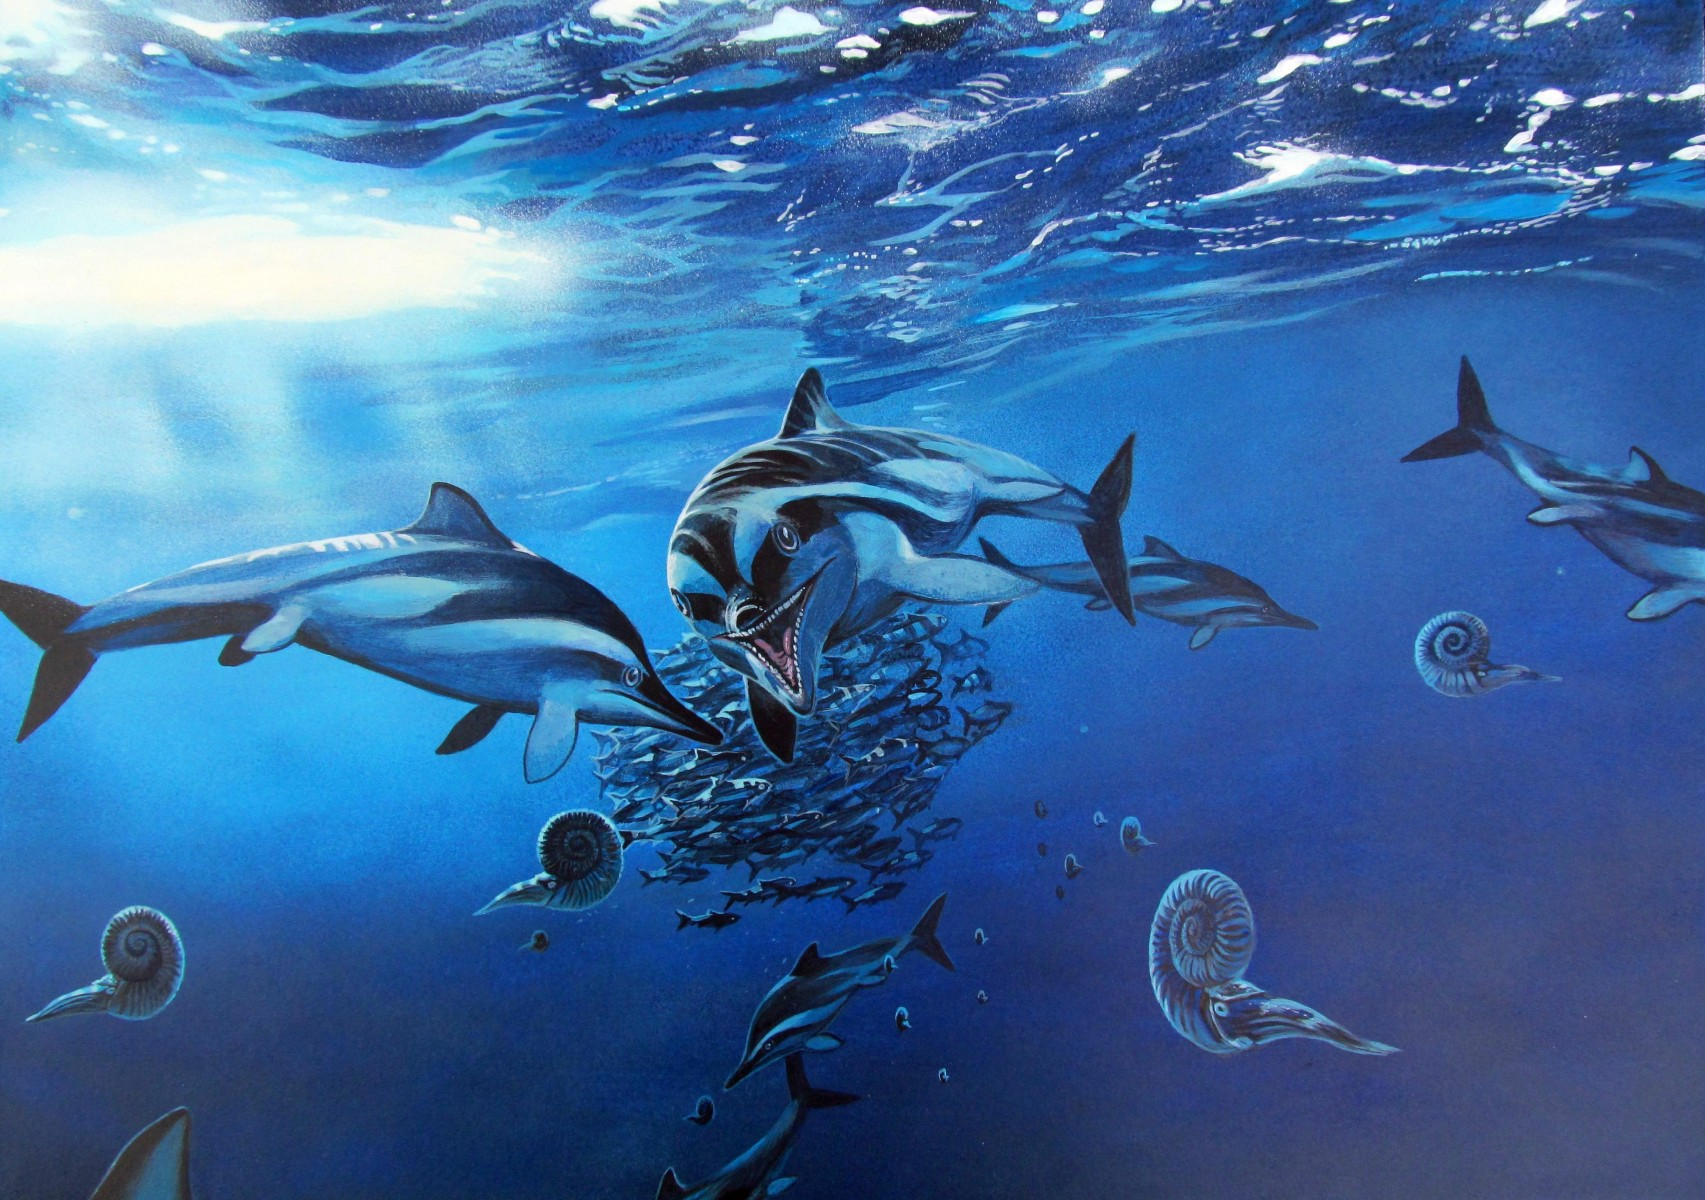 Ichthyosaurus life restoration - Artwork by James McKay (2)